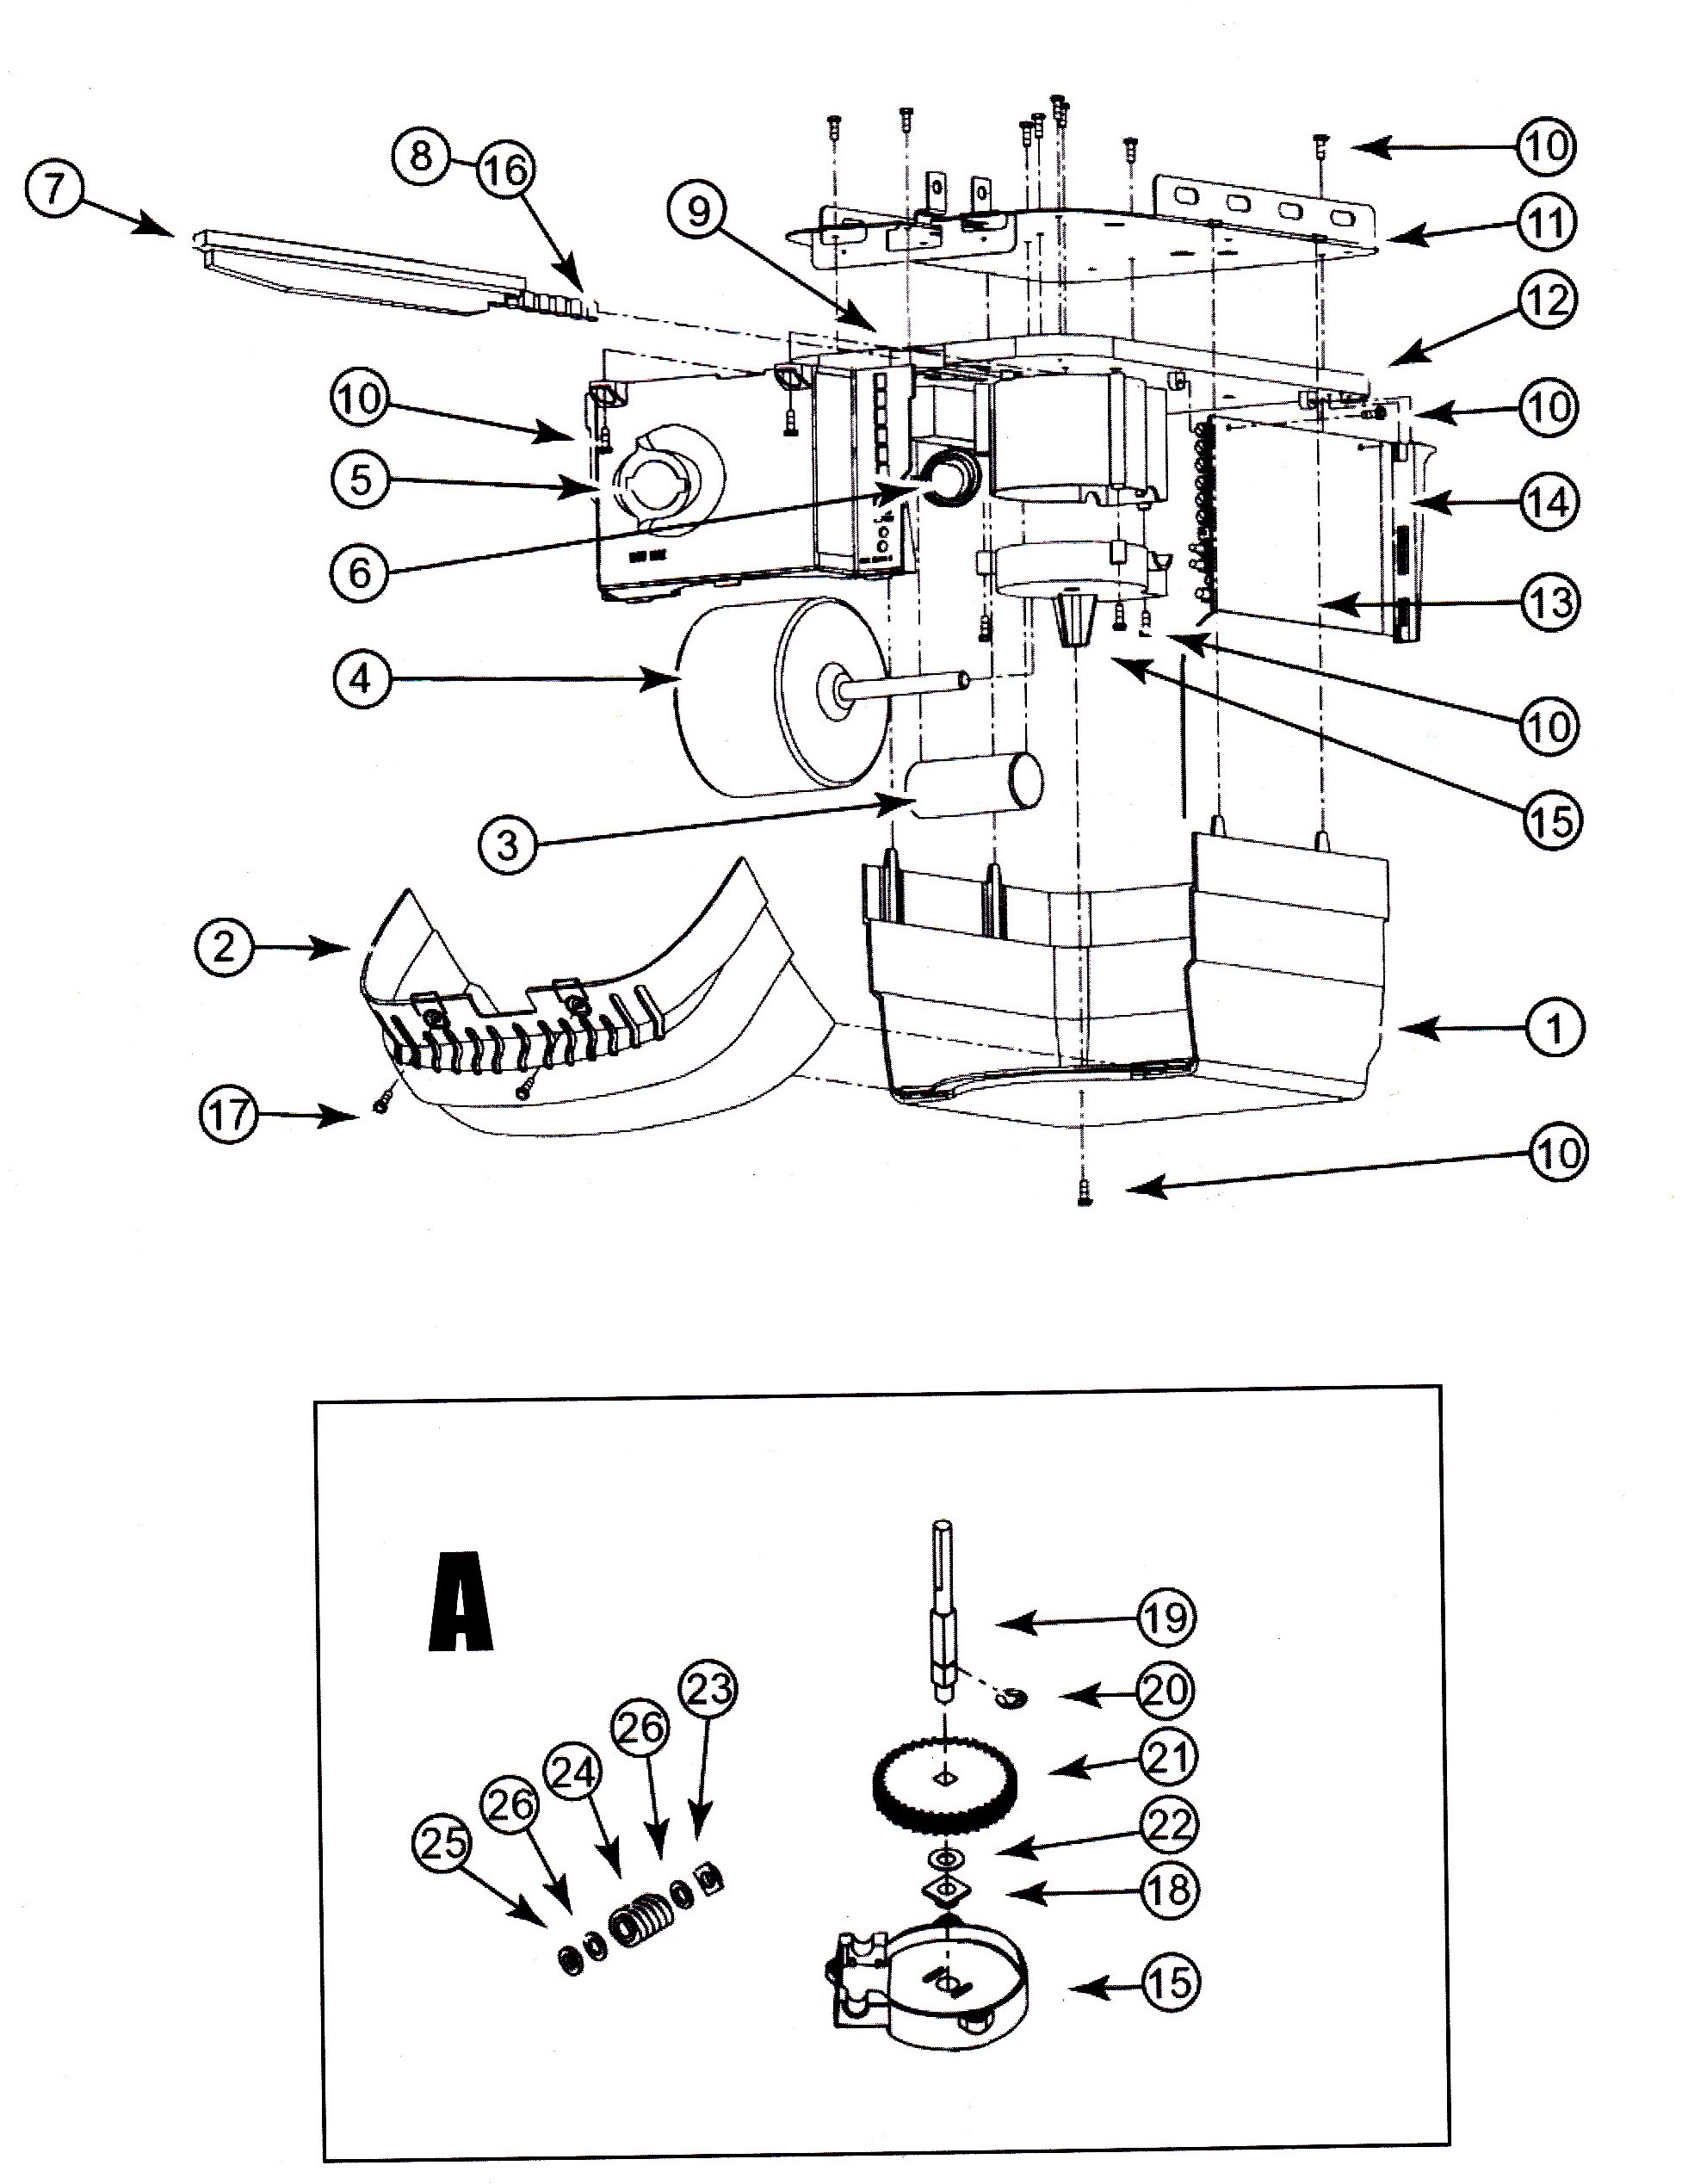 genie model 450 wiring diagram   30 wiring diagram images